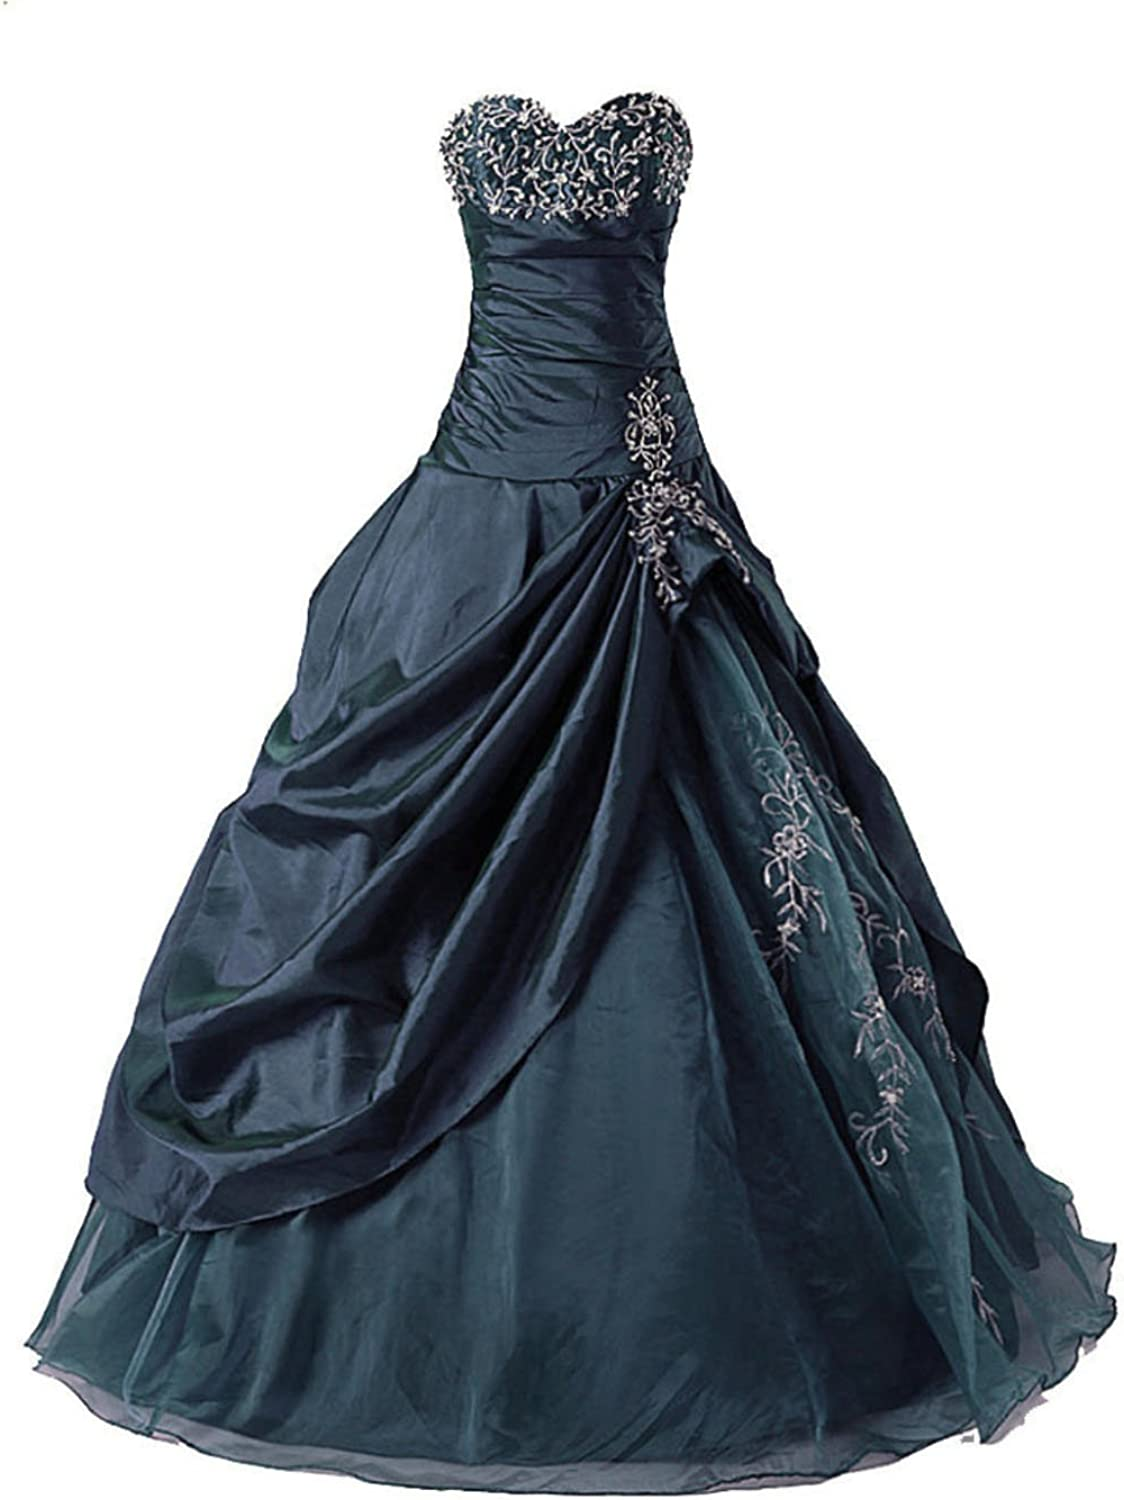 Vantexi Women's Strapless Taffeta Quinceanera Dress Prom Gown